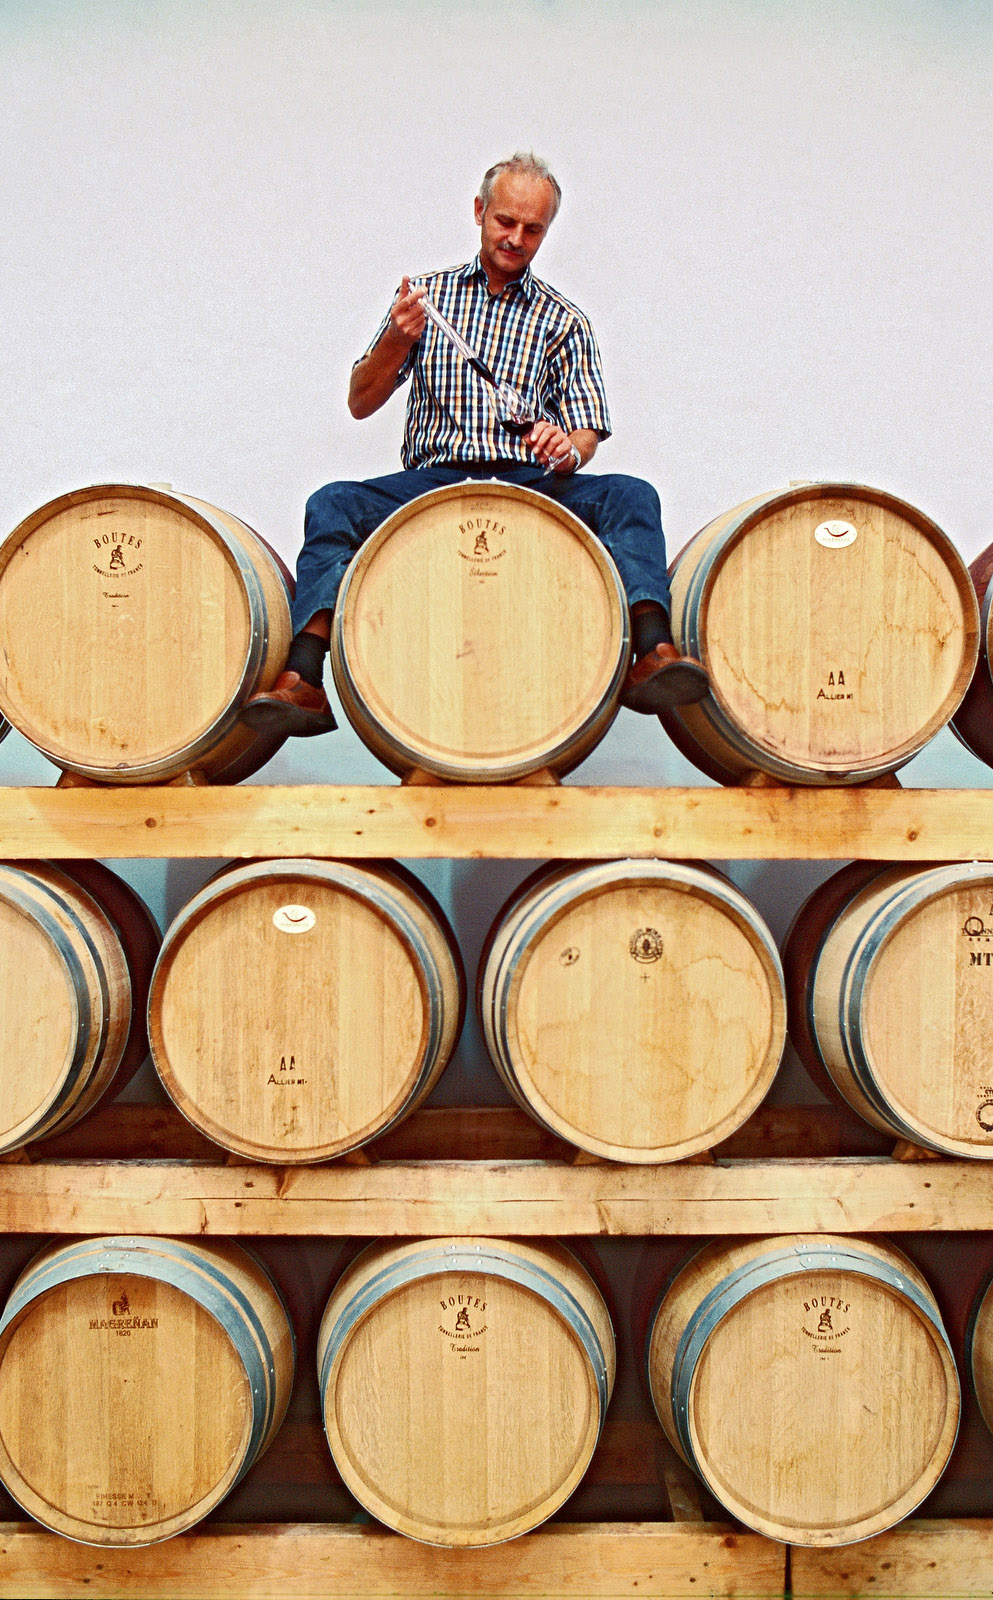 y9740 - NOT TO USE FOR WINE ADVERTISING - GESPERRT FUER WEIN-WERBUNG - Spain, Valencia Region, Utiel-Requena, Bodegas Palmera, Organic viniculture, owner Heiner Sauer sitting on top of oak barrels testing his wine.